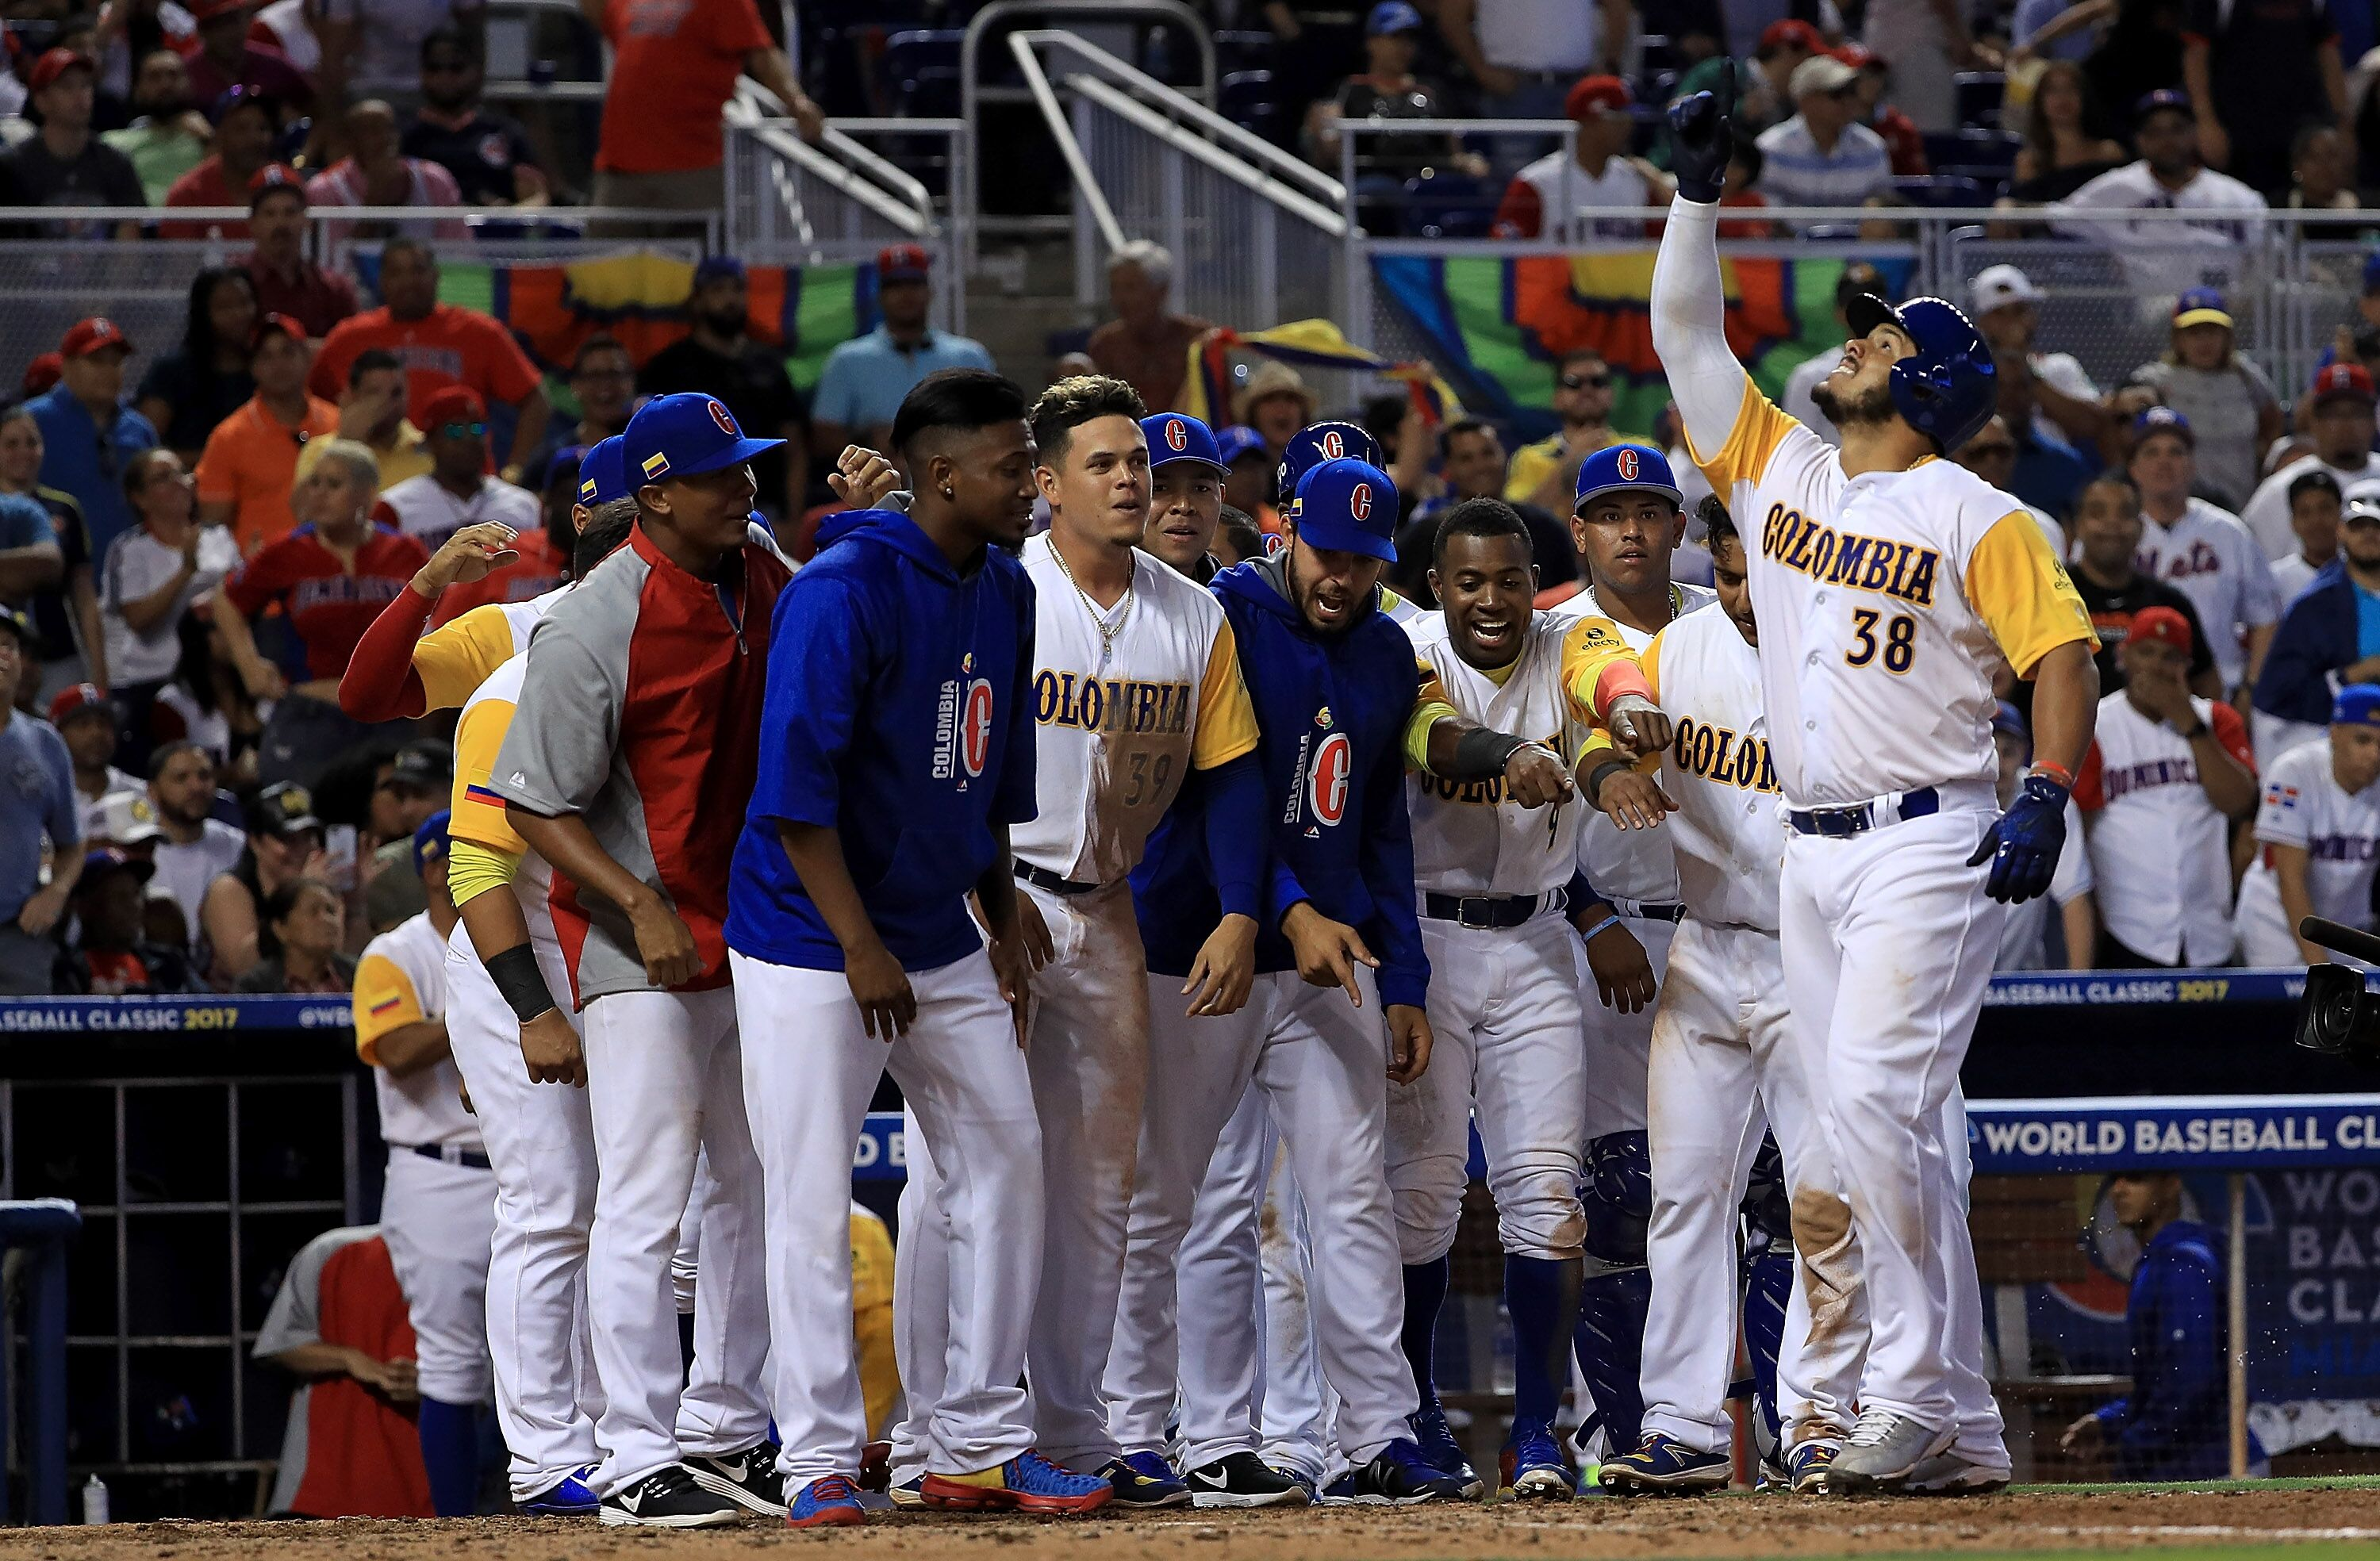 652593244-world-baseball-classic-pool-c-game-5-dominican-republic-v-columbia.jpg